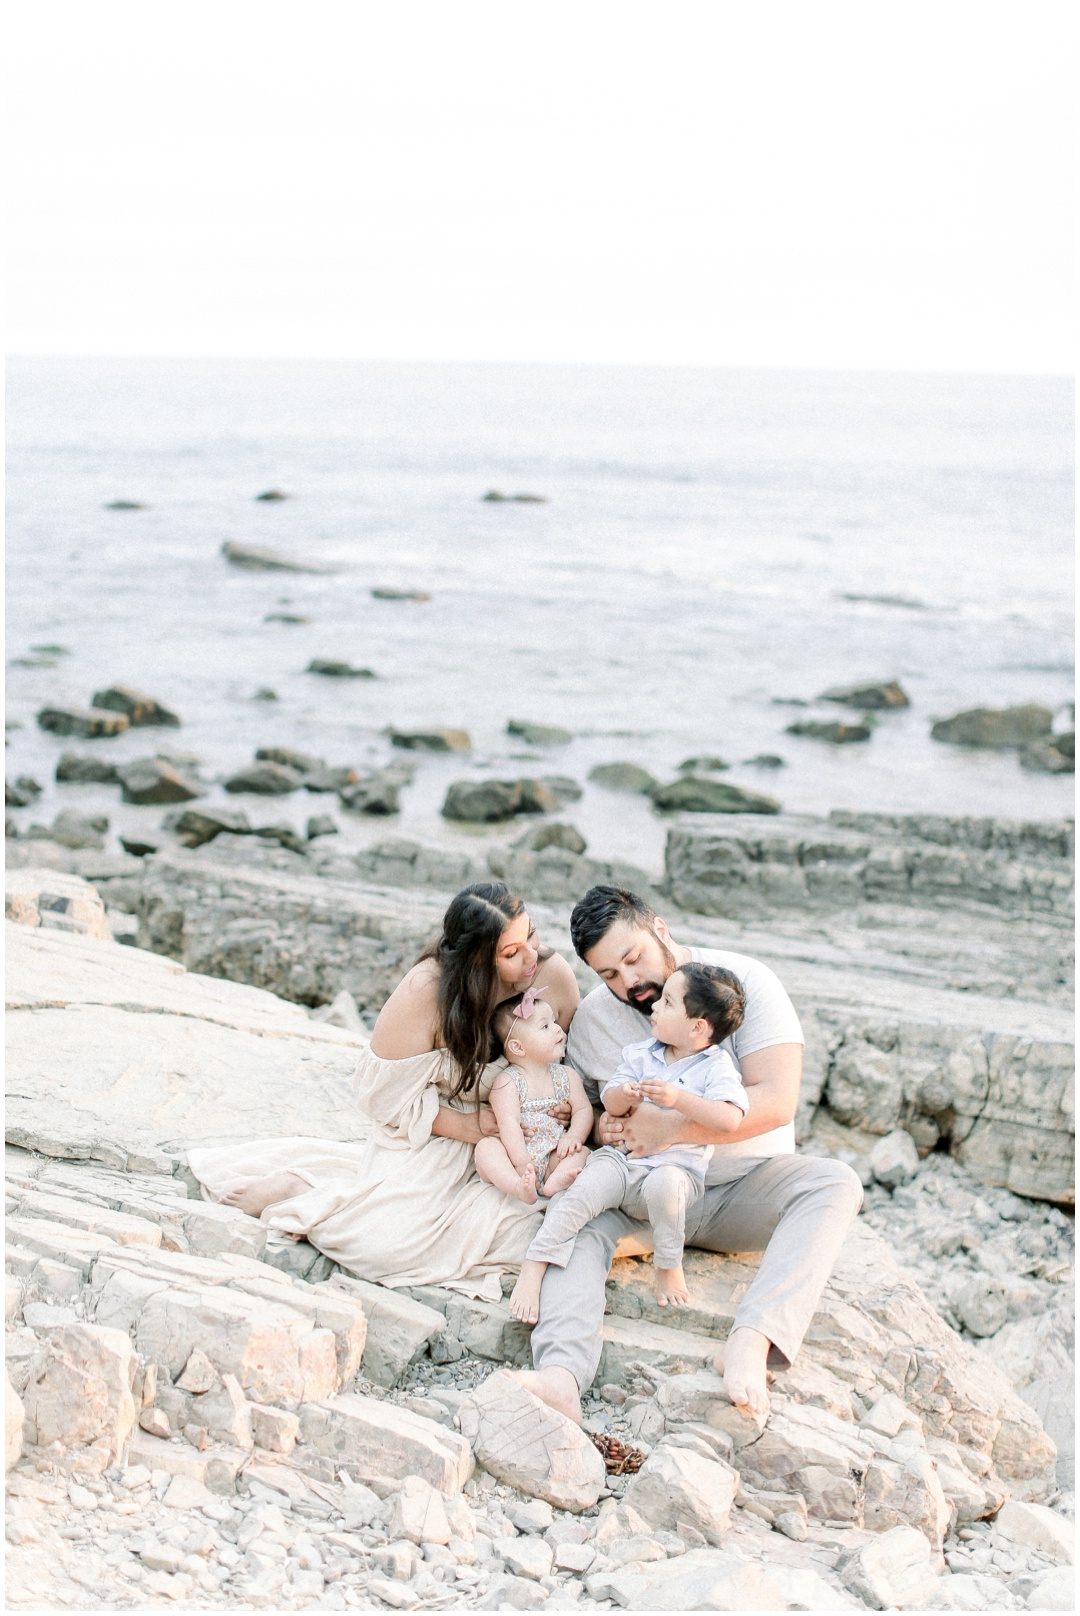 Newport_Beach_Newborn_Light_Airy_Natural_Photographer_Newport_Beach_Photographer_Orange_County_Family_Photographer_Cori_Kleckner_Photography_Huntington_Beach_Photographer_Family_OC_Newborn_Natalie_Nunez_Thomas_Nunez_Natalie_Roca_Rosh_Nunez_Family_3564.jpg